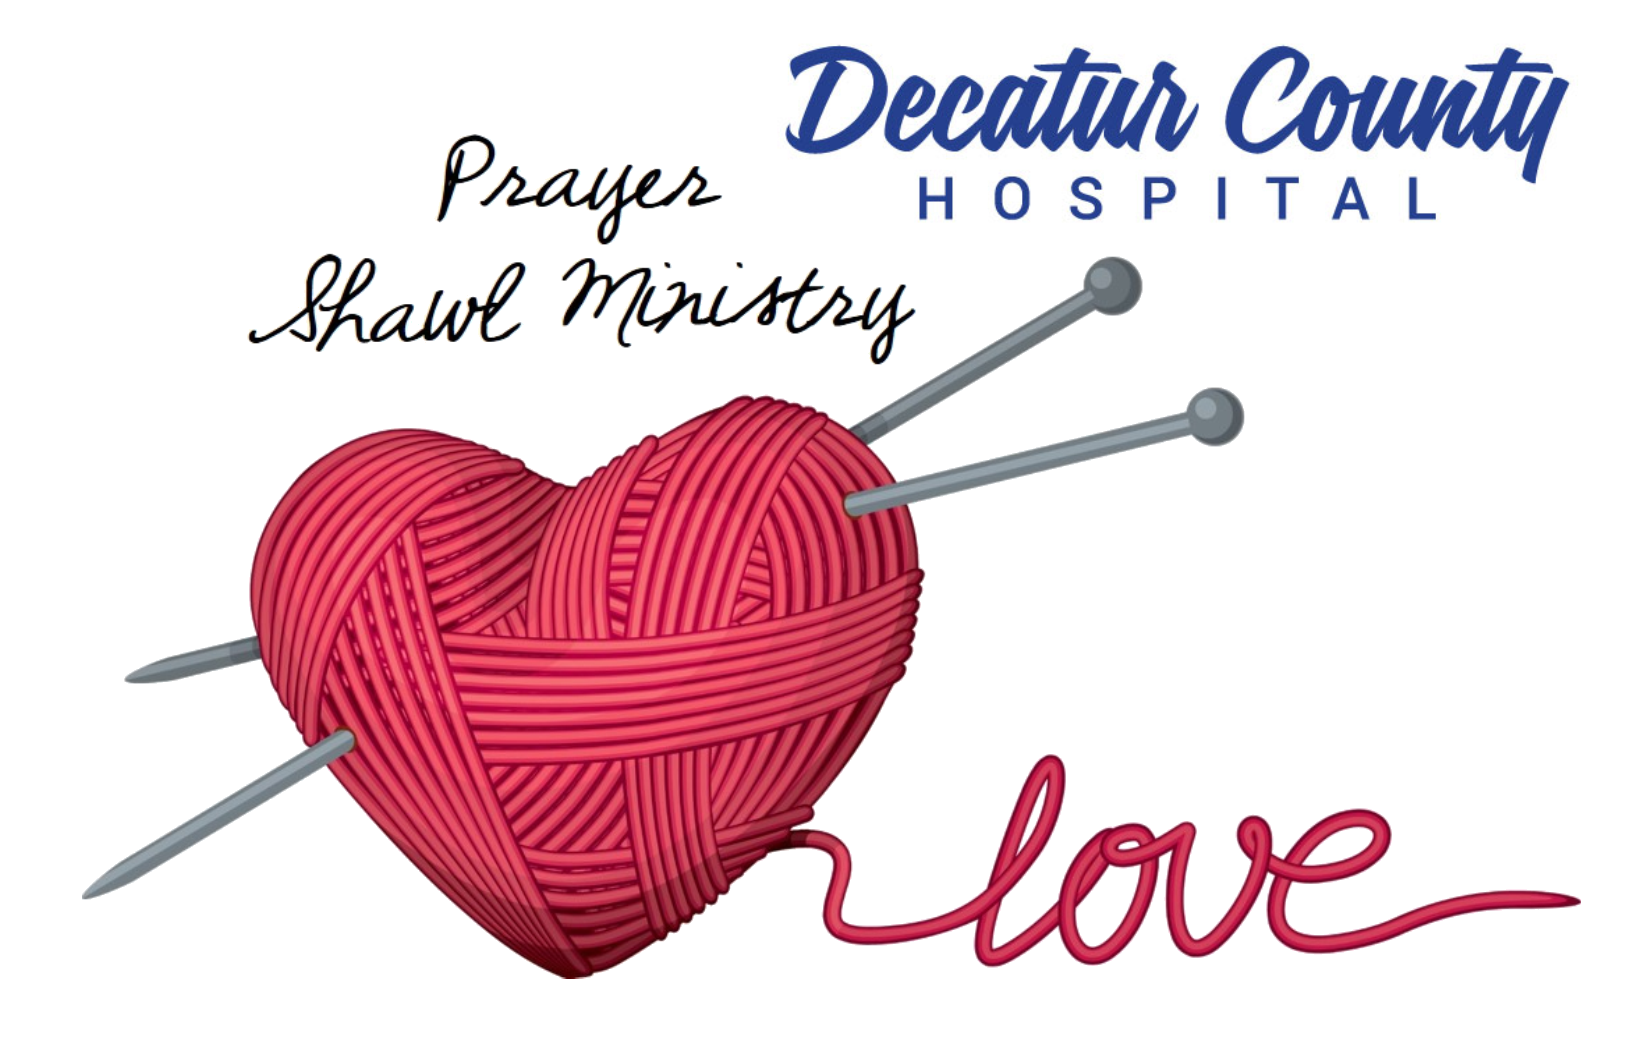 Missions clipart prayer shawl. Decatur county hospital ministry